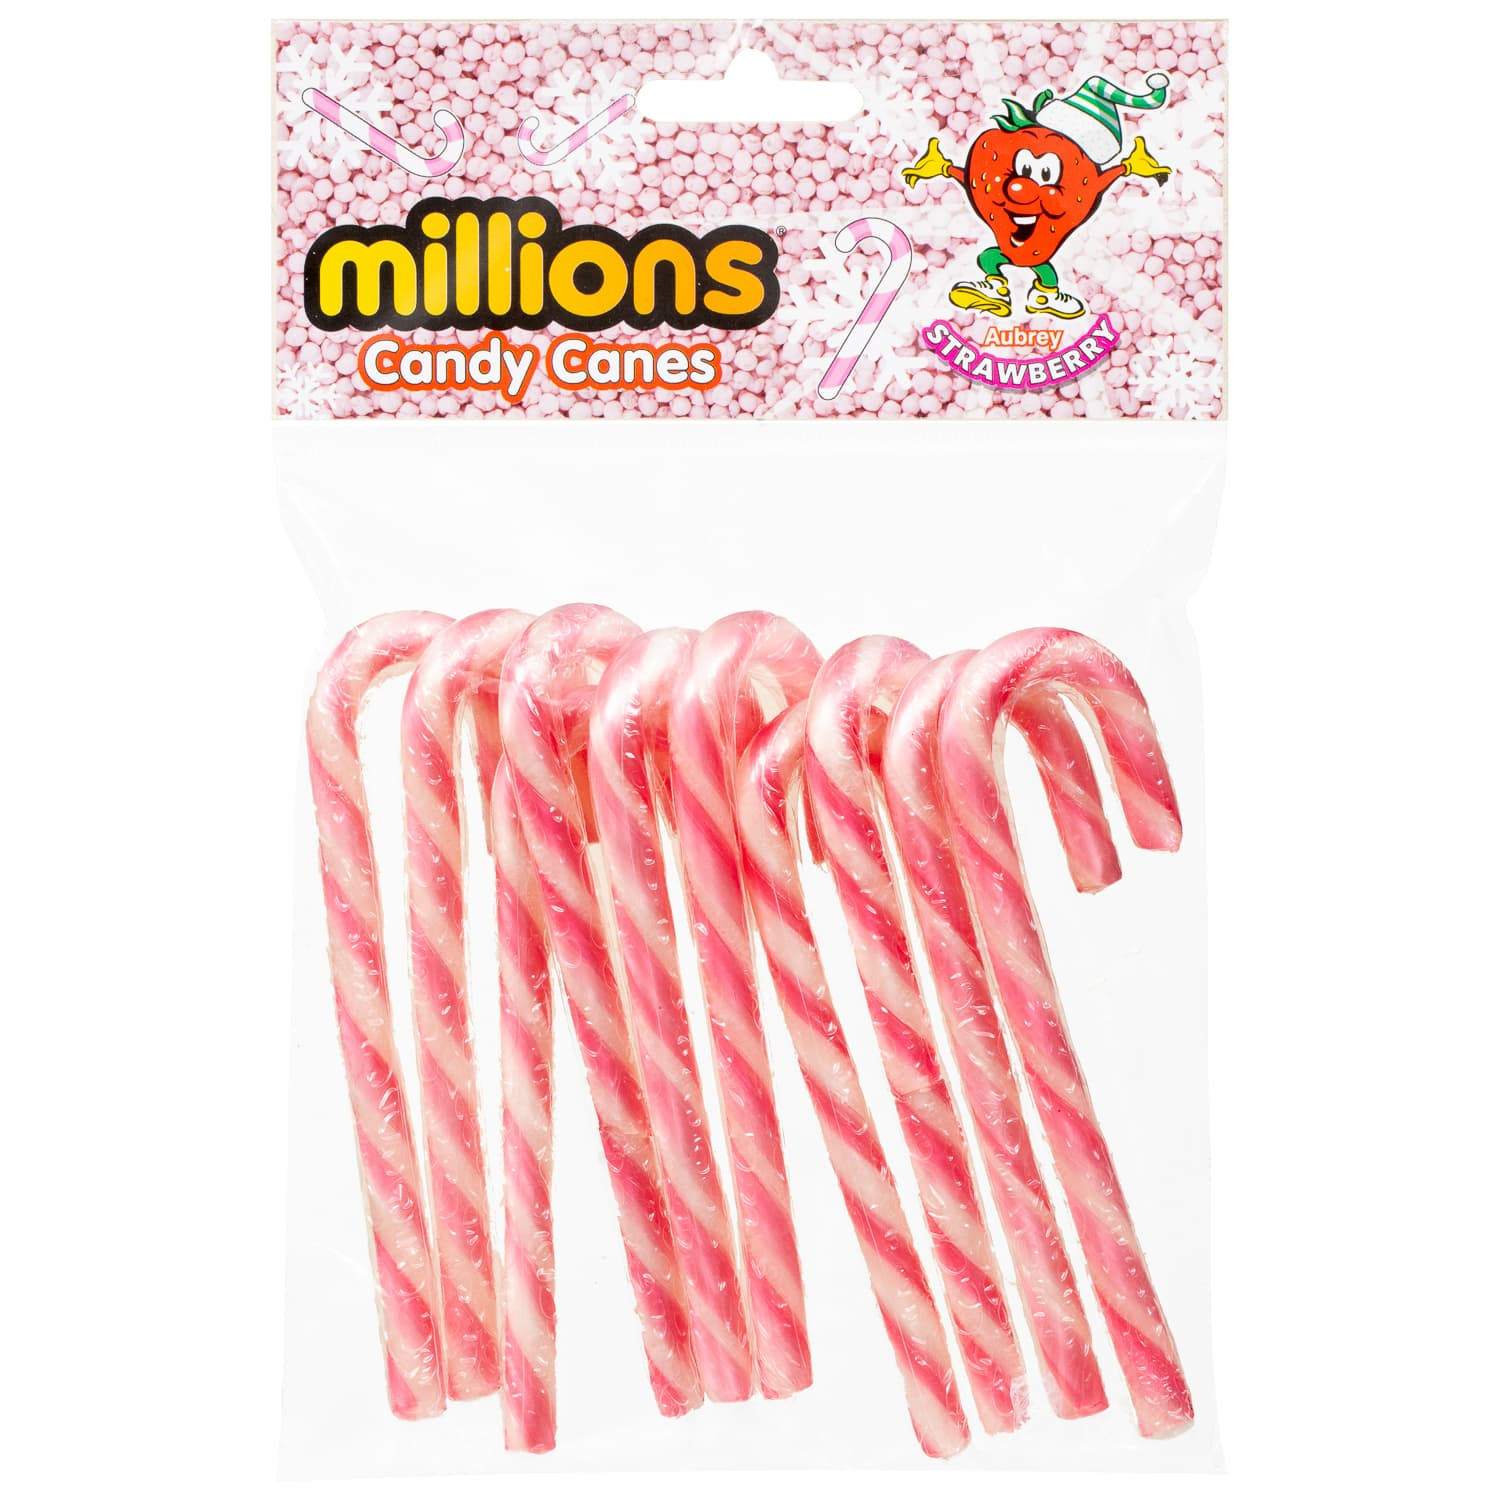 Millions Candy Canes Pink